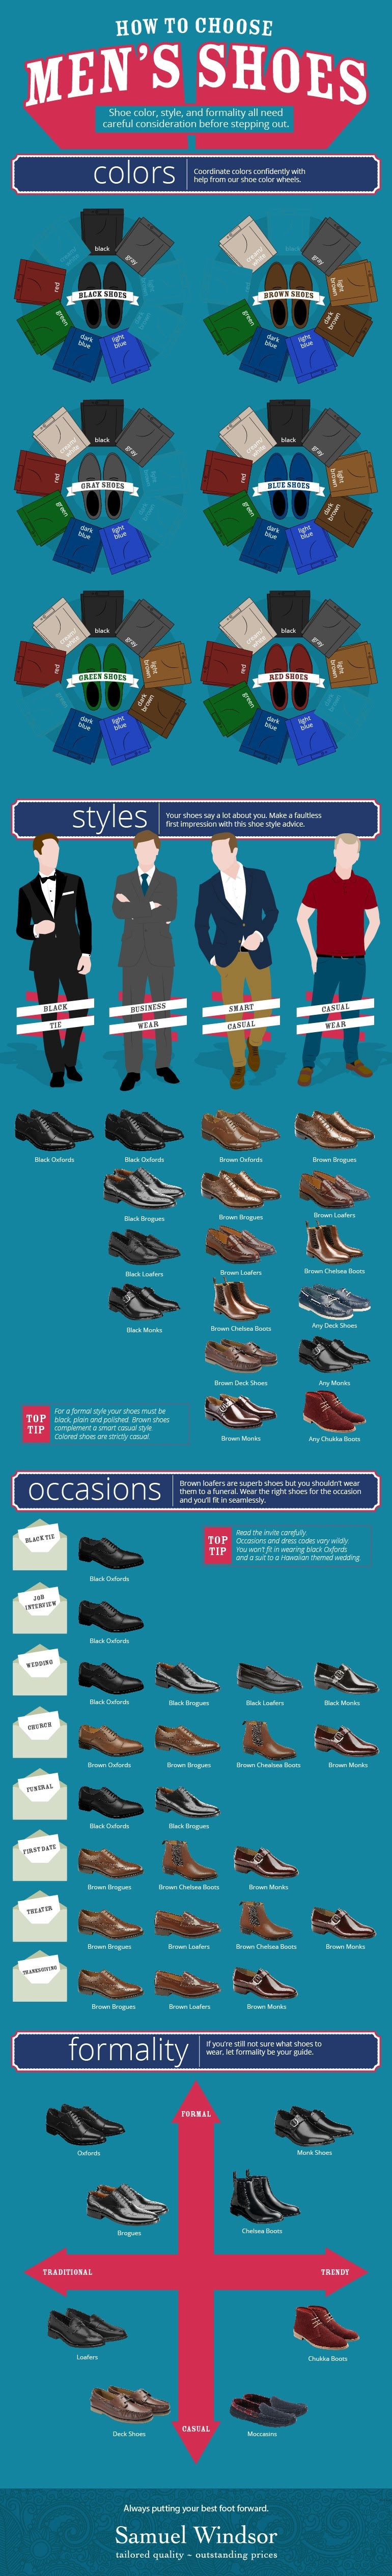 How to choose men's shoes